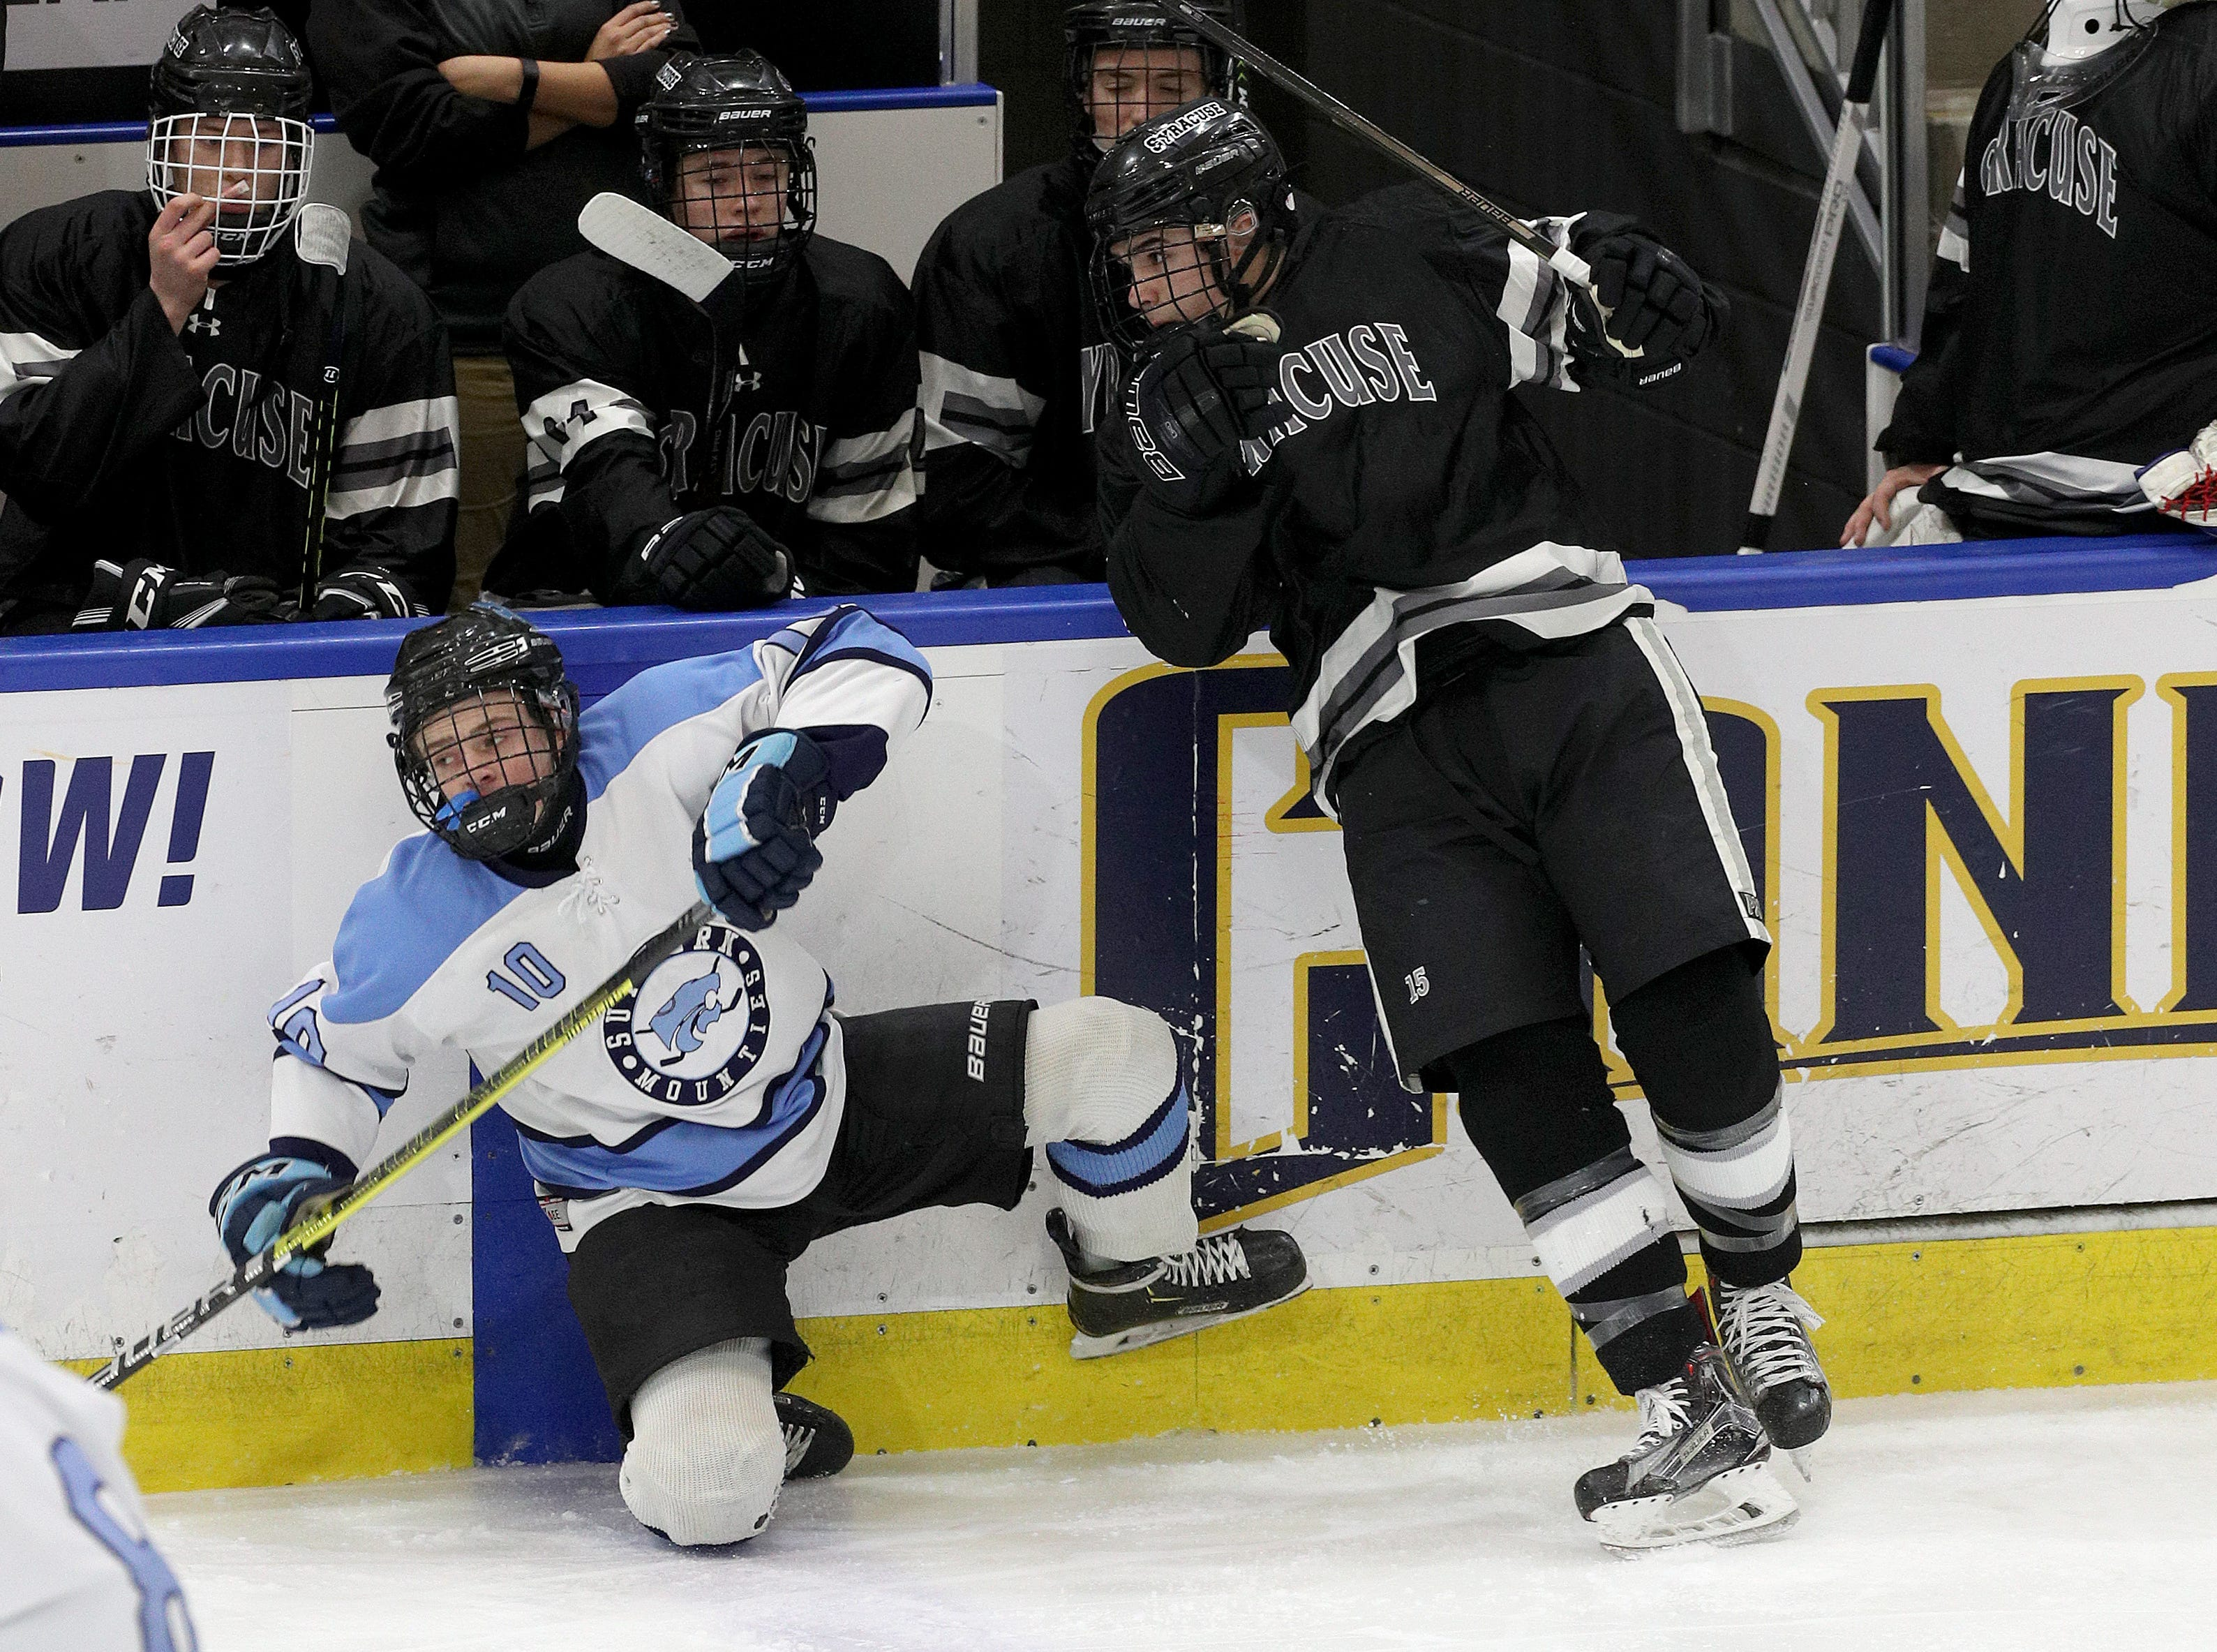 Suffern's Tommy McCarren is checked along the boards by Syracuse's Zachary Delaney.